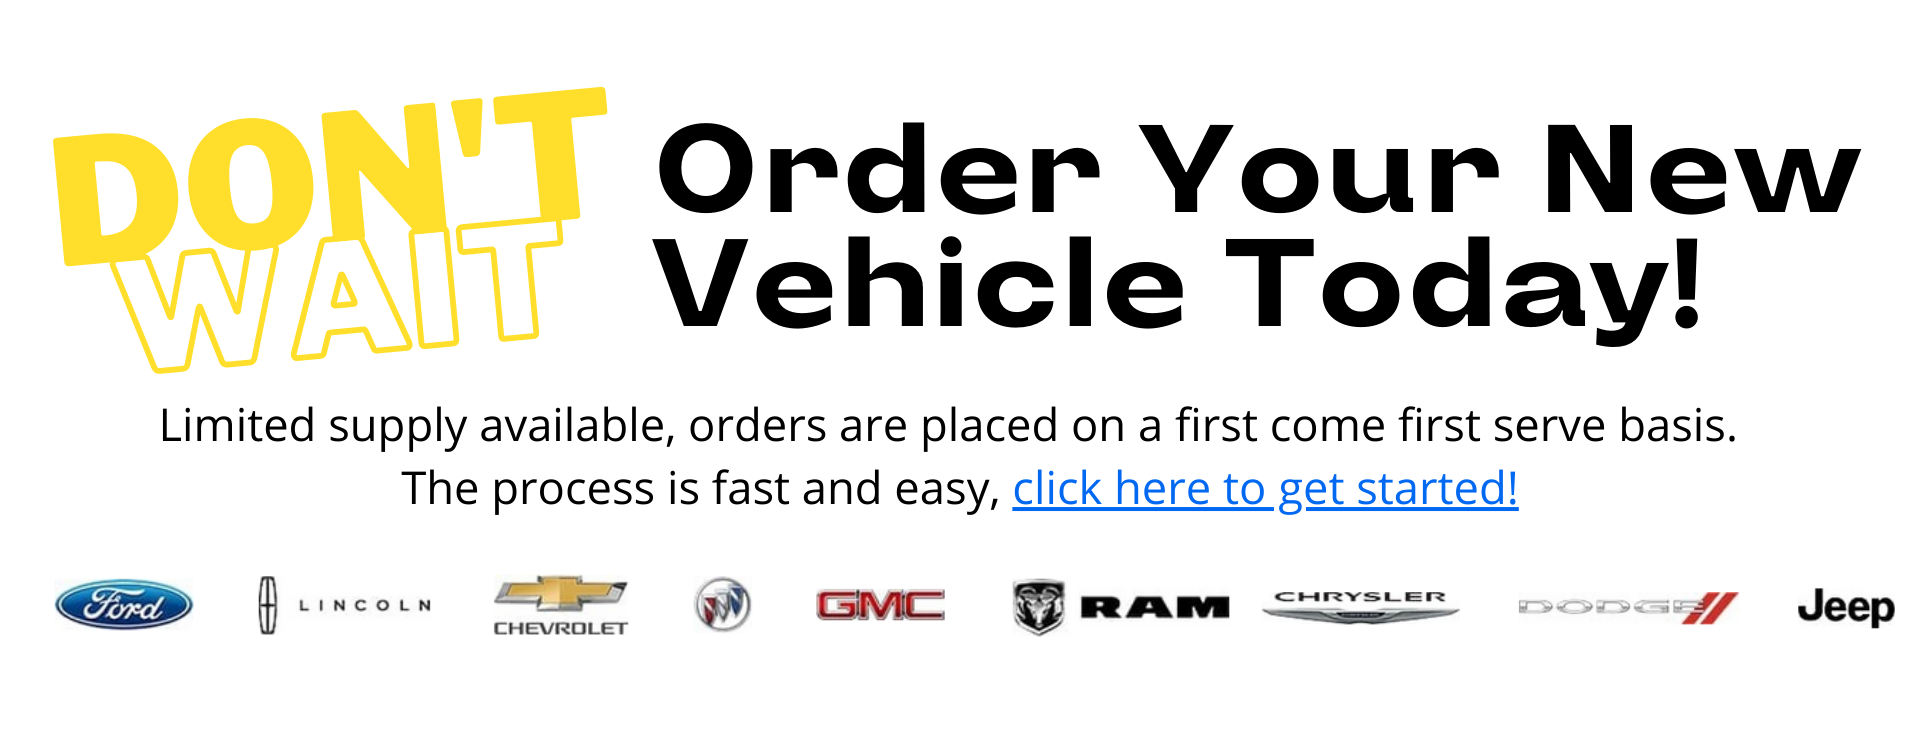 1920 by 750 Order Your Vehicle Banner